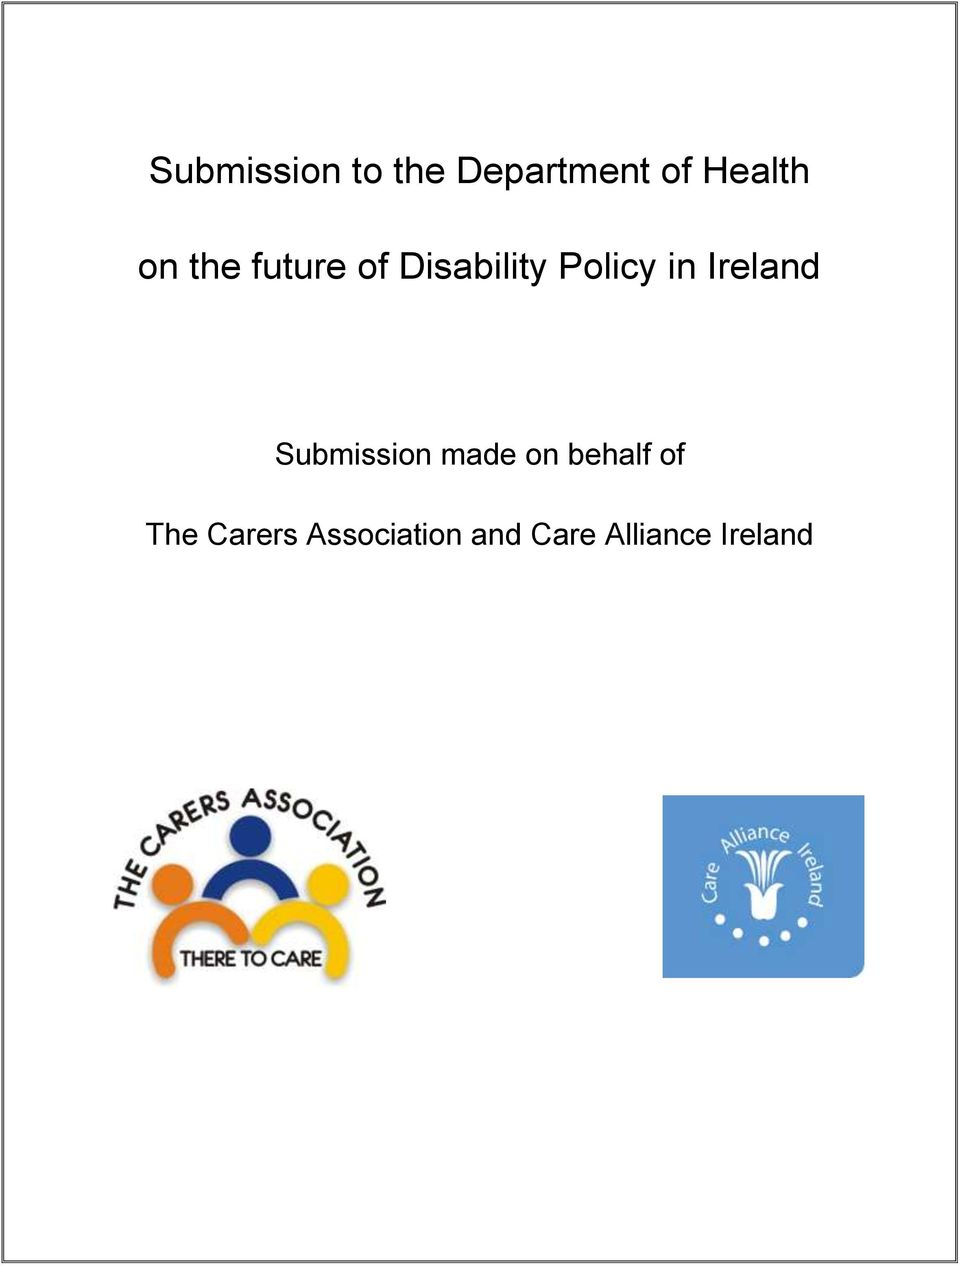 Ireland Submission made on behalf of The